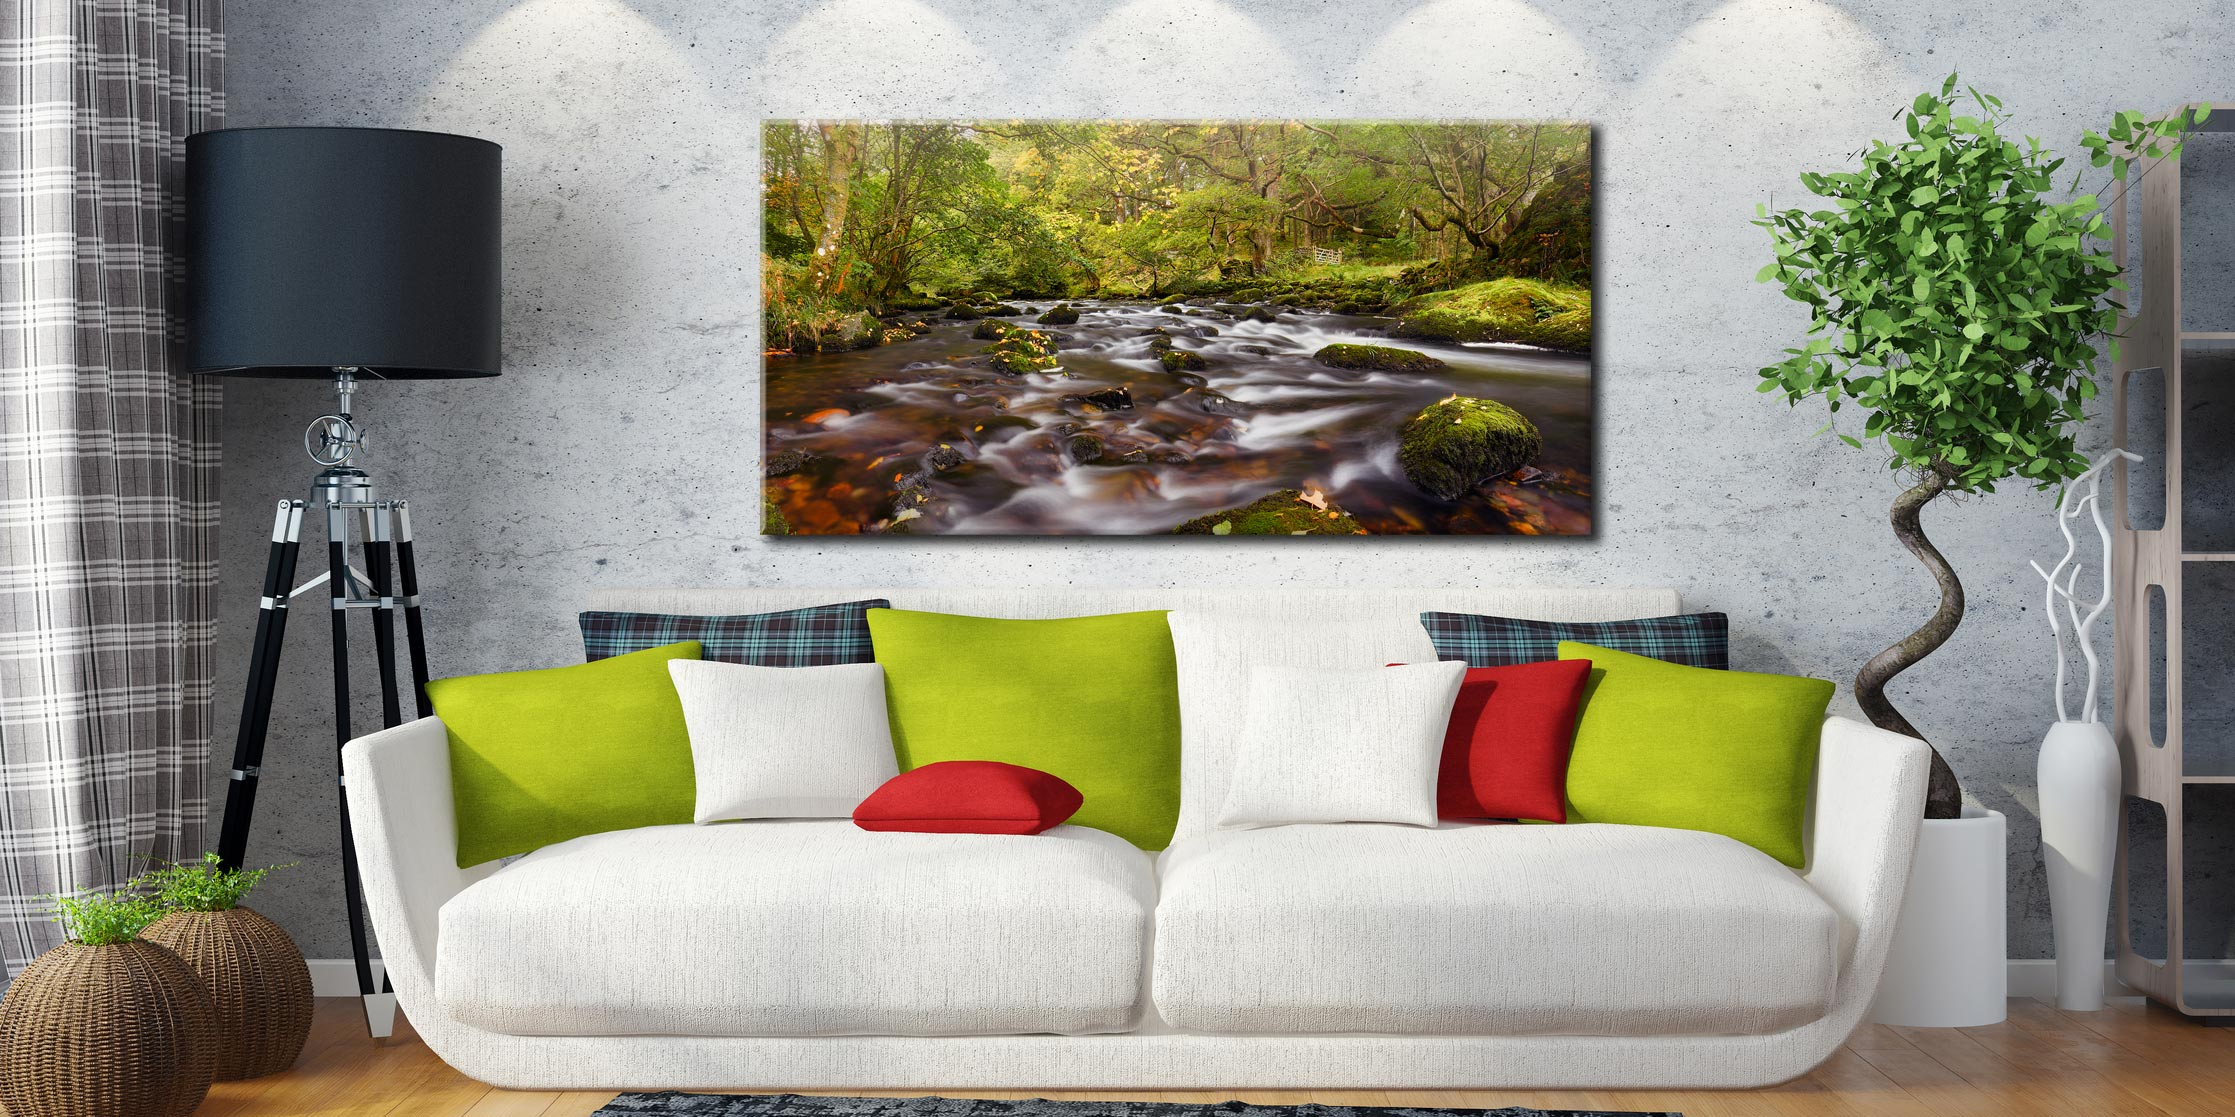 Start of Autumn River Rothay - Canvas Print on Wall